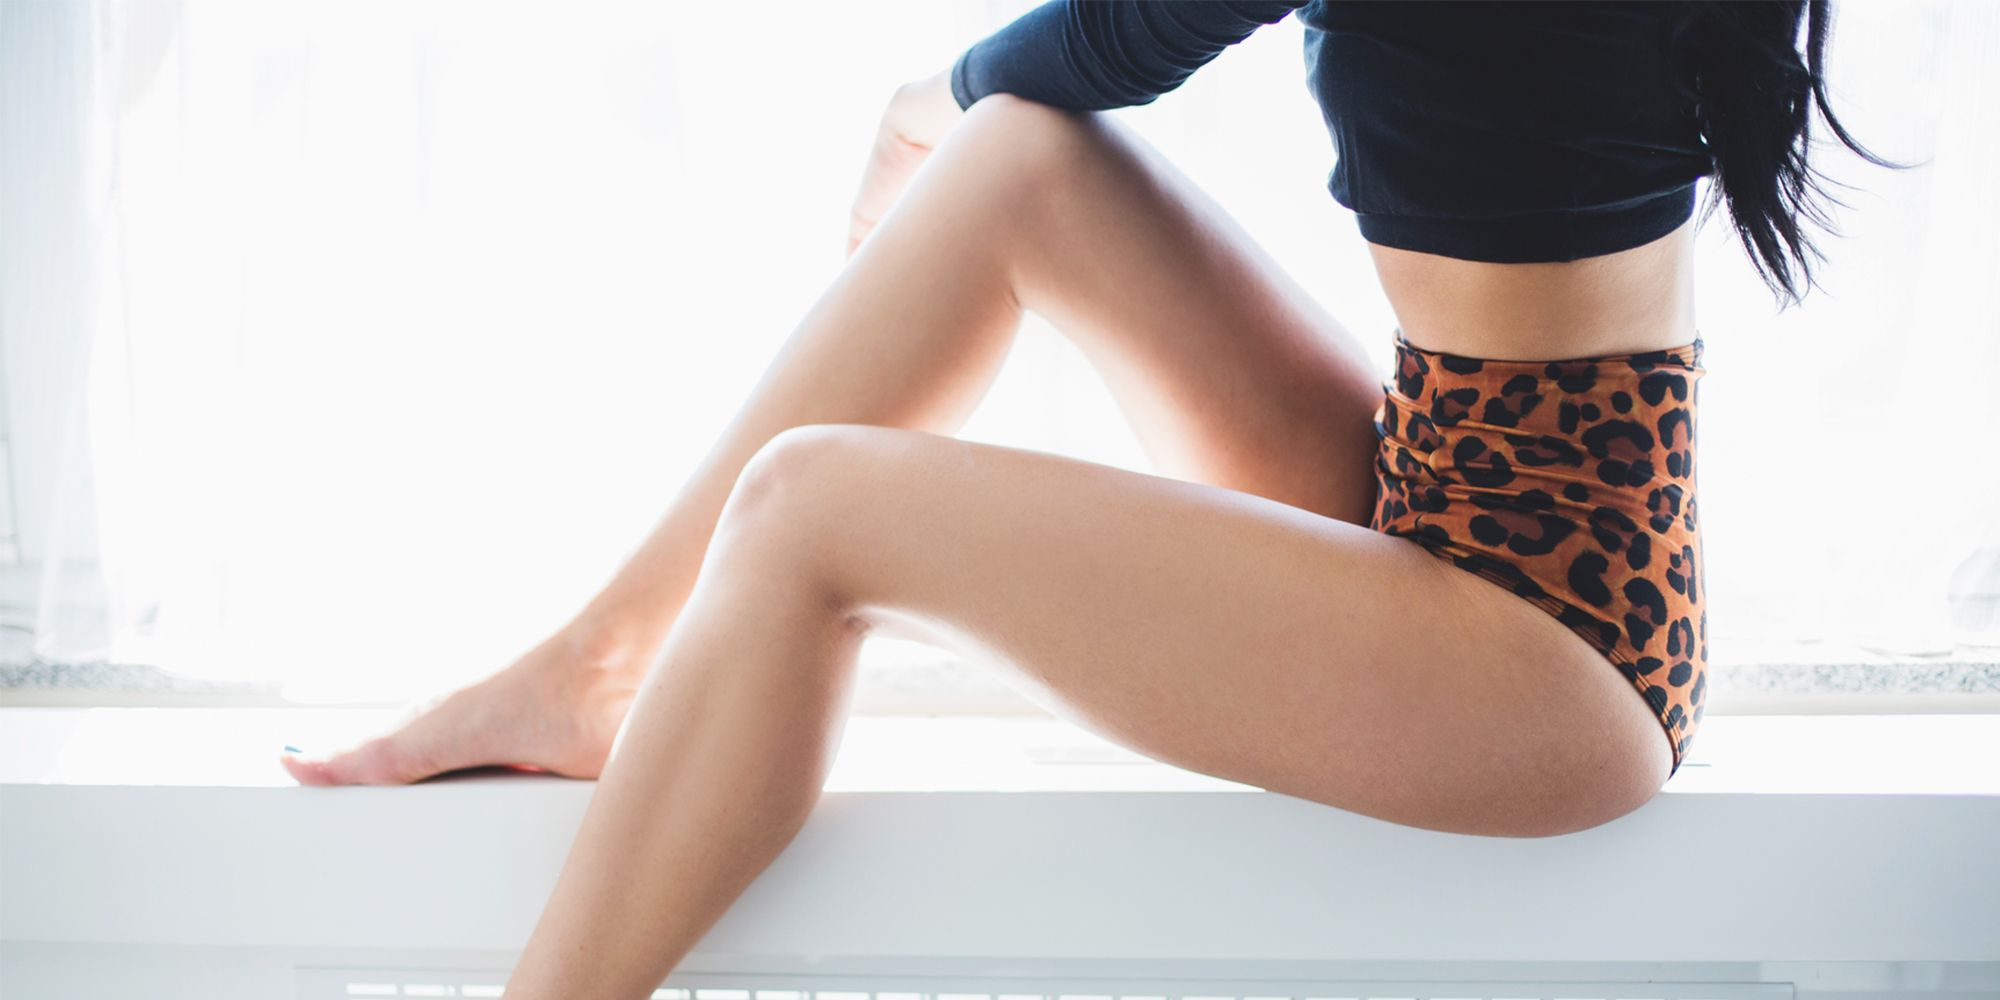 5 best laser hair removal at home products - diy laser hair removal